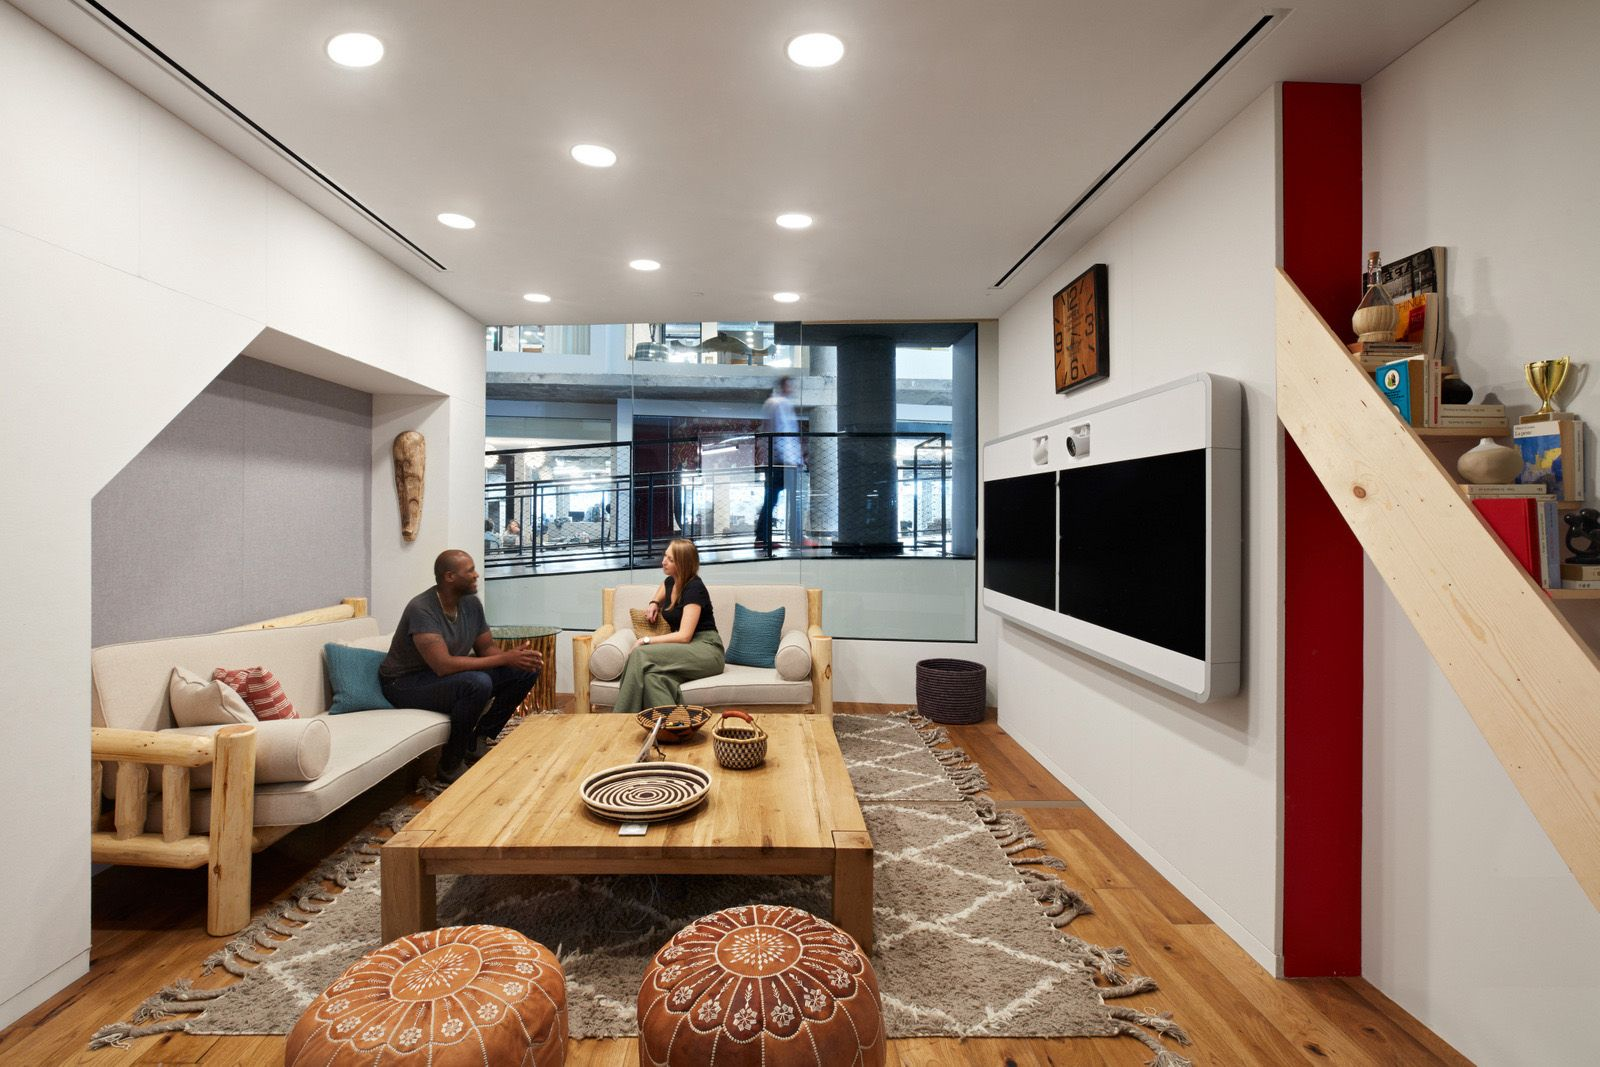 airbnb office. Airbnb US Headquarters Expansion - San Francisco 15 Airbnb Office